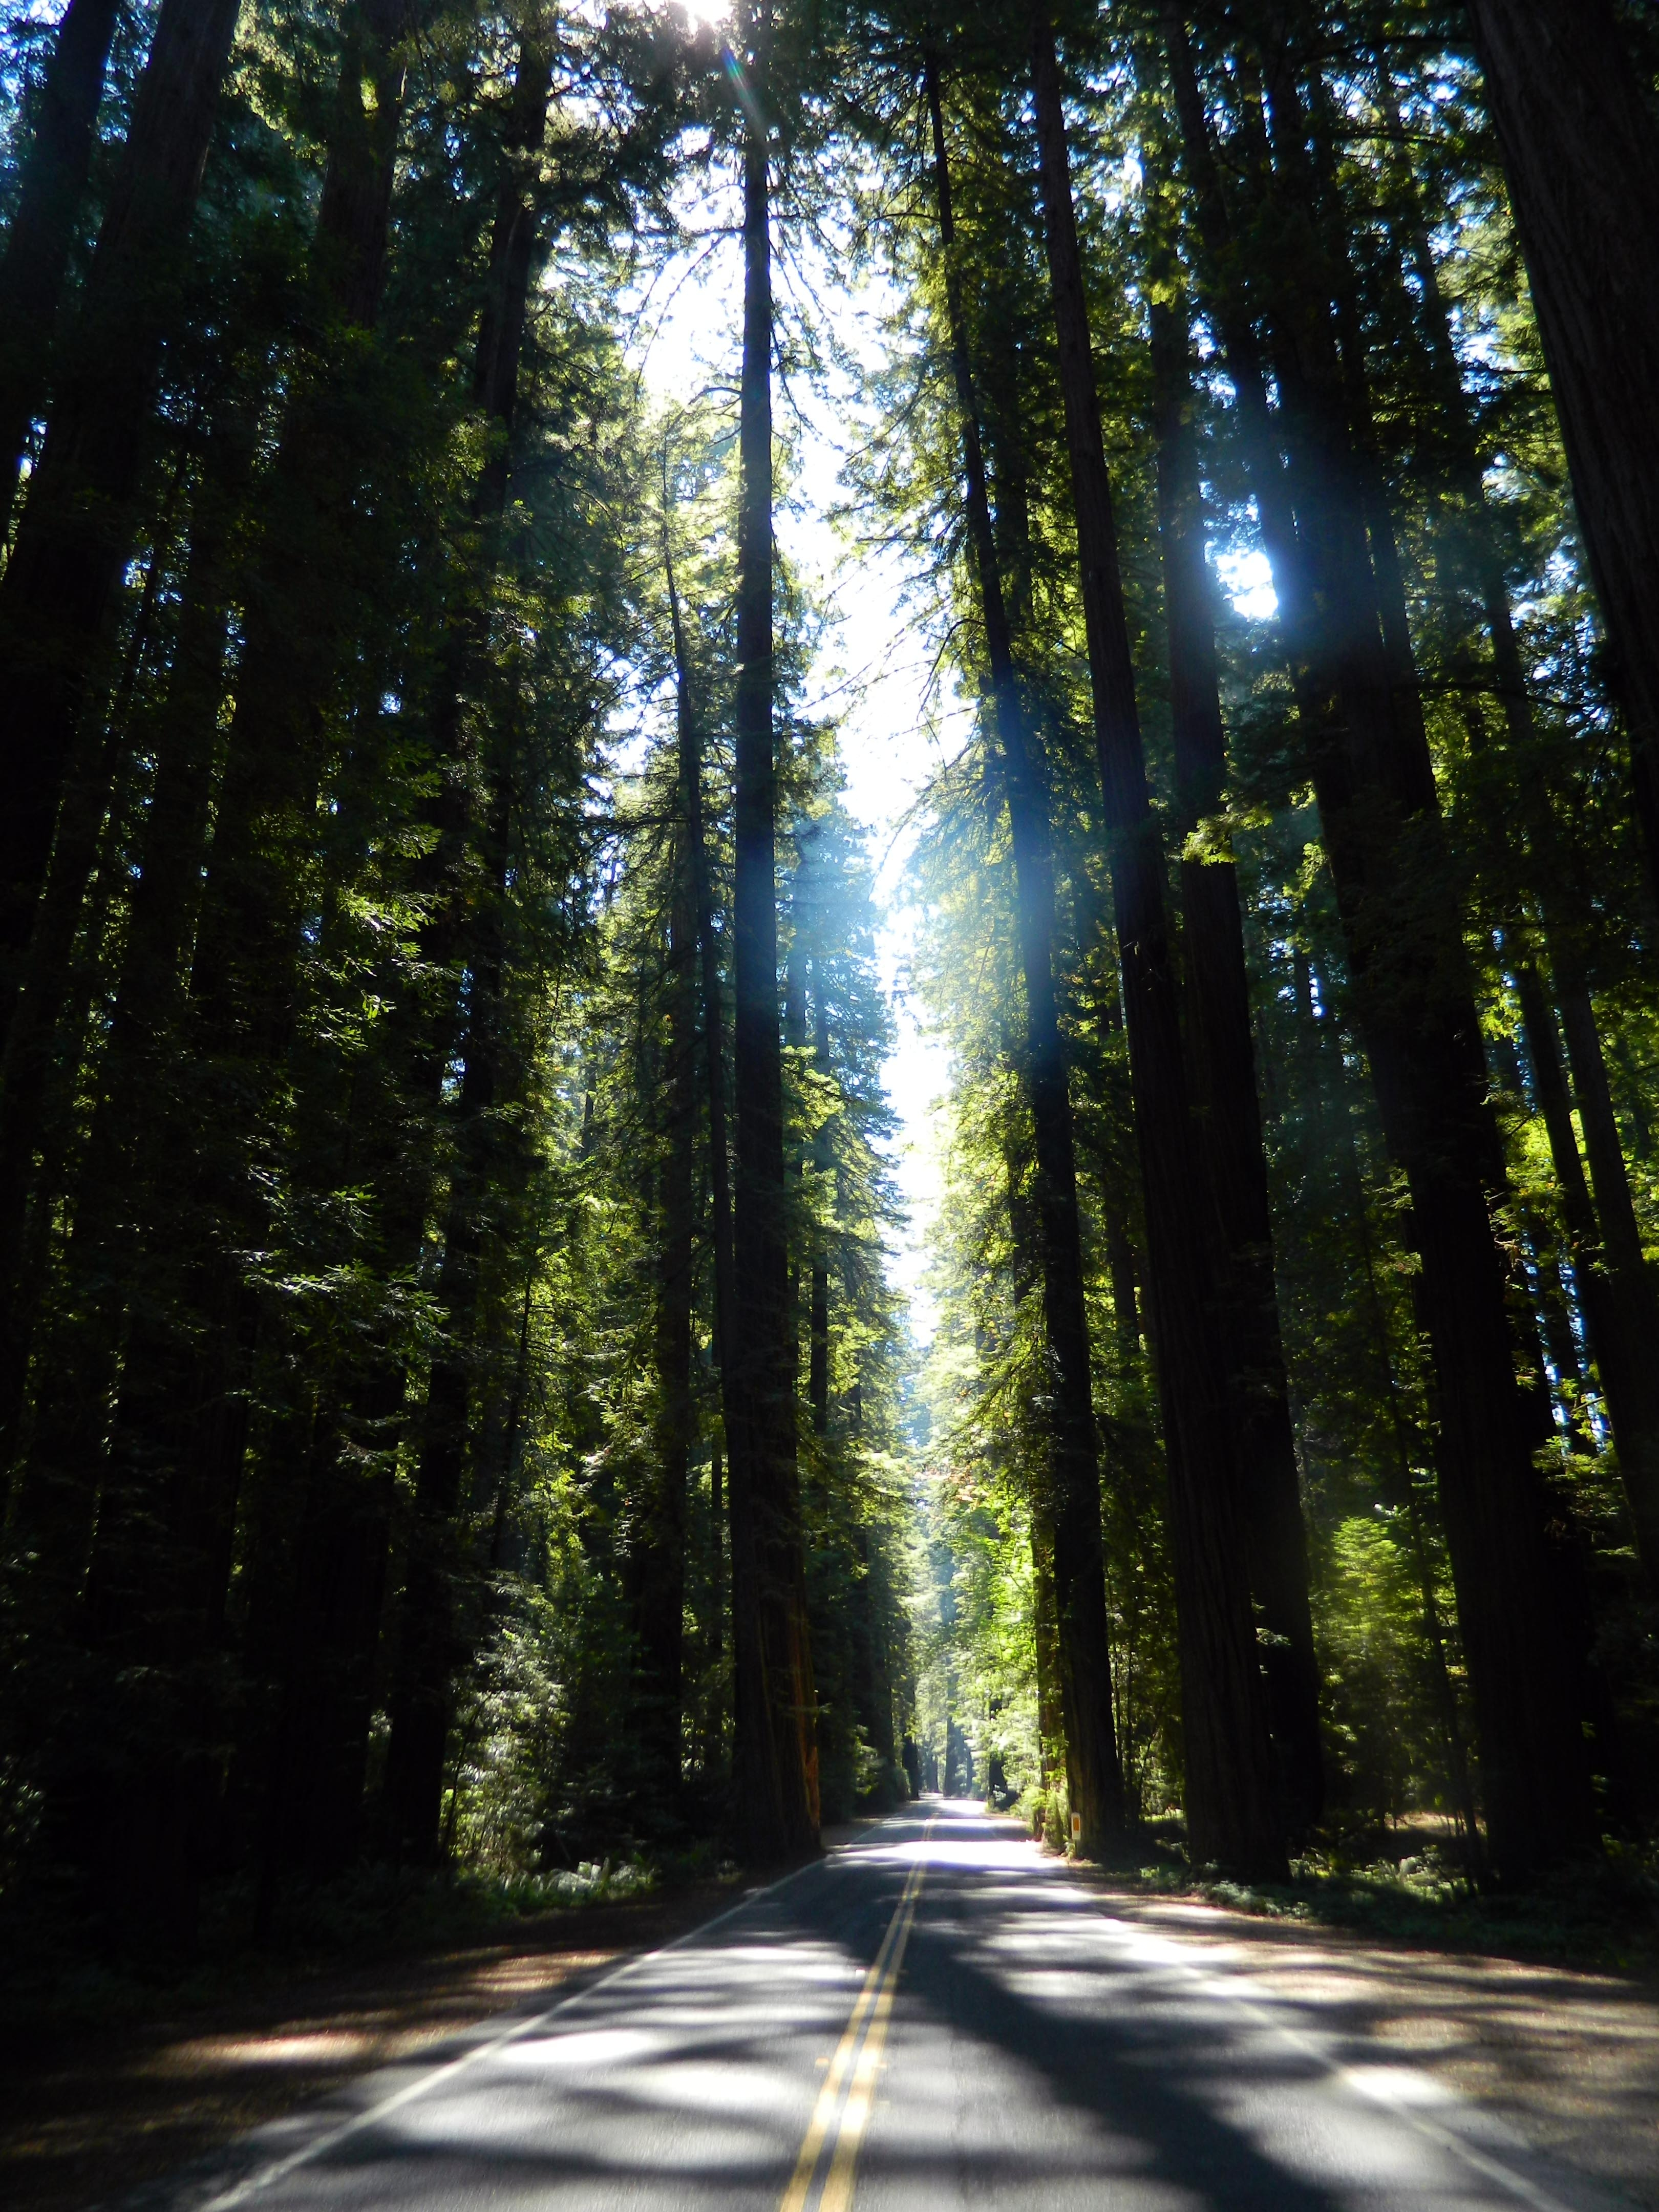 Old-Growth Redwoods along the Avenue of The Giants, Humboldt County. (photo by D. Speredelozzi)